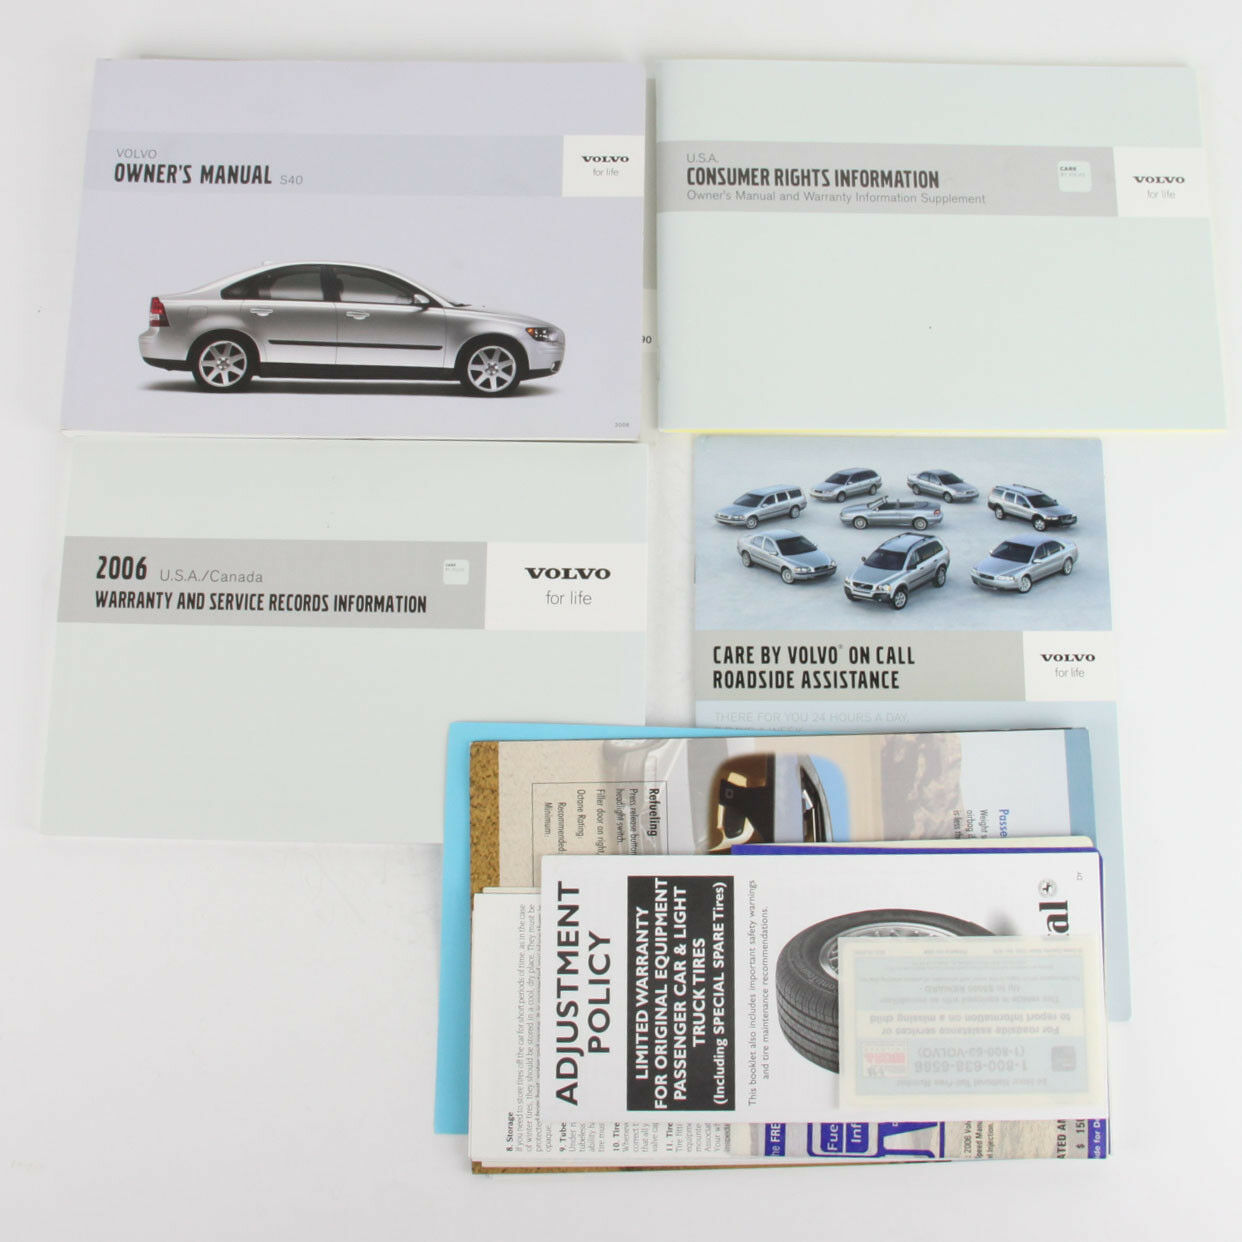 volvo s40 owners manual oem handbook pack 2006 owner s drivers rh picclick co uk 2006 volvo s40 2.4i owners manual 2006 volvo s40 2.4i owners manual